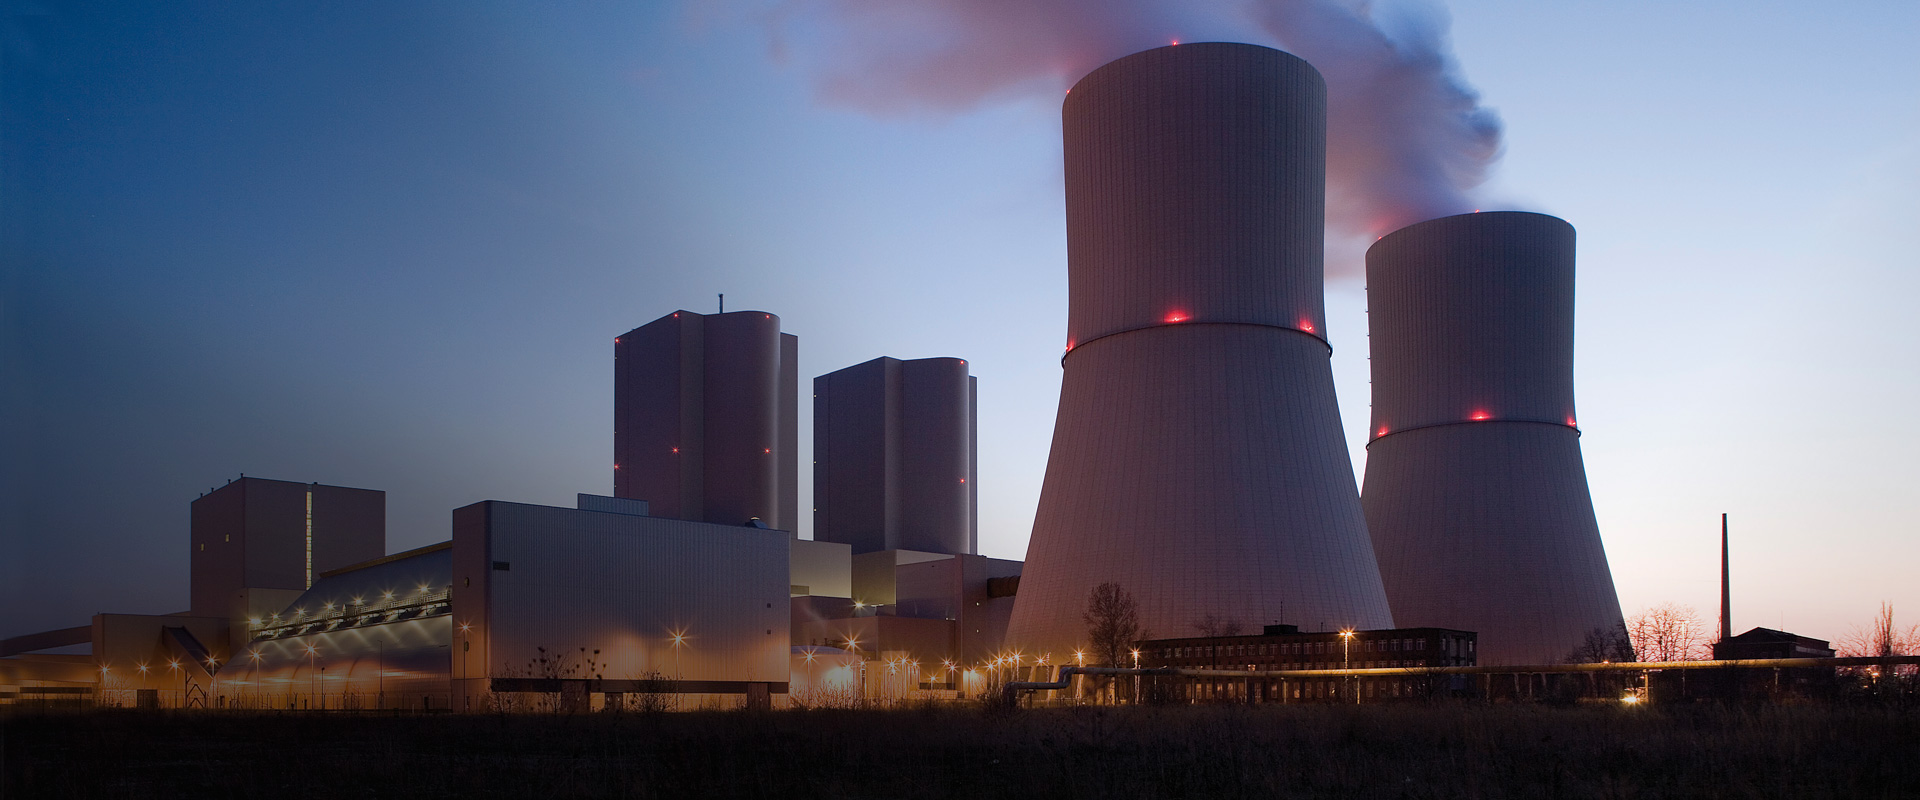 Comprehensive product portfolio and solutions of MC for thermal power plants